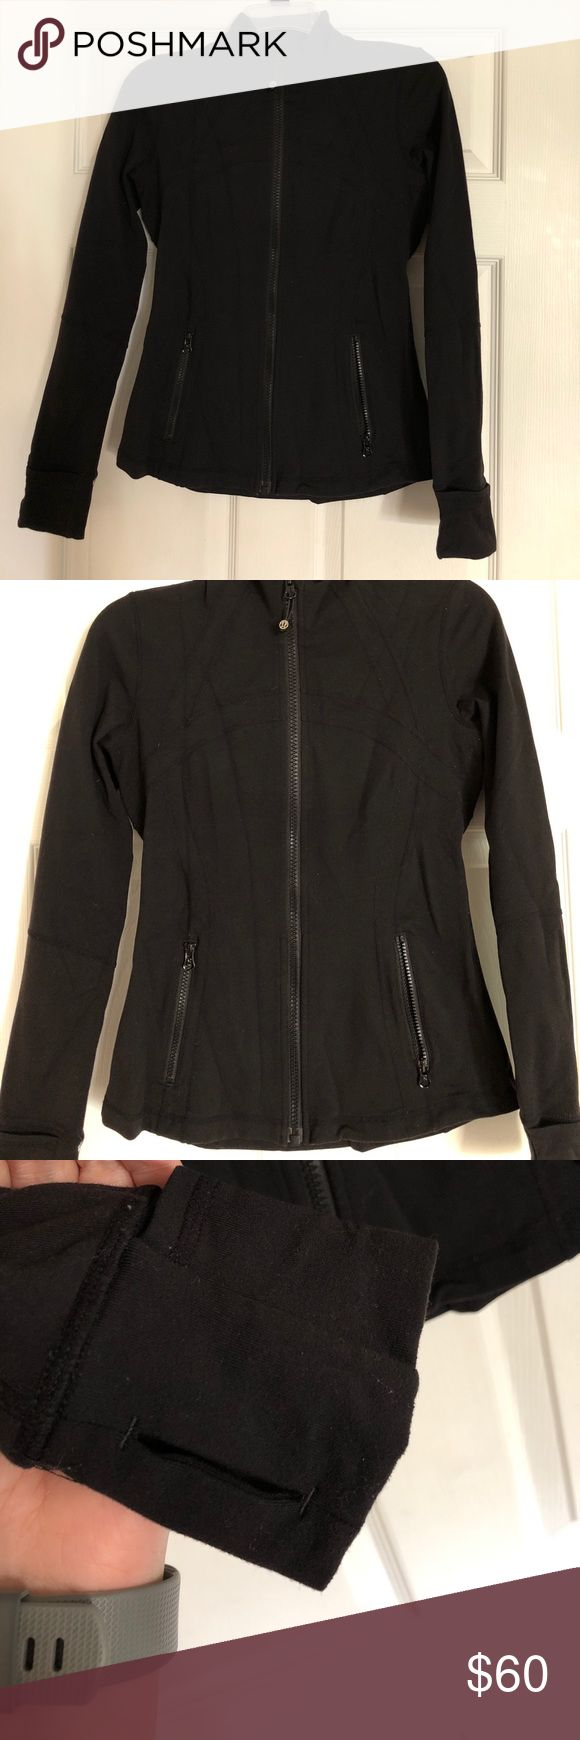 Lululemon Define Jacket sz 6 black Excellent condition. Minor pulling on the inside and directly under the arm pits. Won't see it unless you're looking hard. Zipper works with no issues. No rips, stains or tears. Bottom of the sleeves roll over to cover your hand on cold days. Smoke free home. lululemon athletica Jackets & Coats